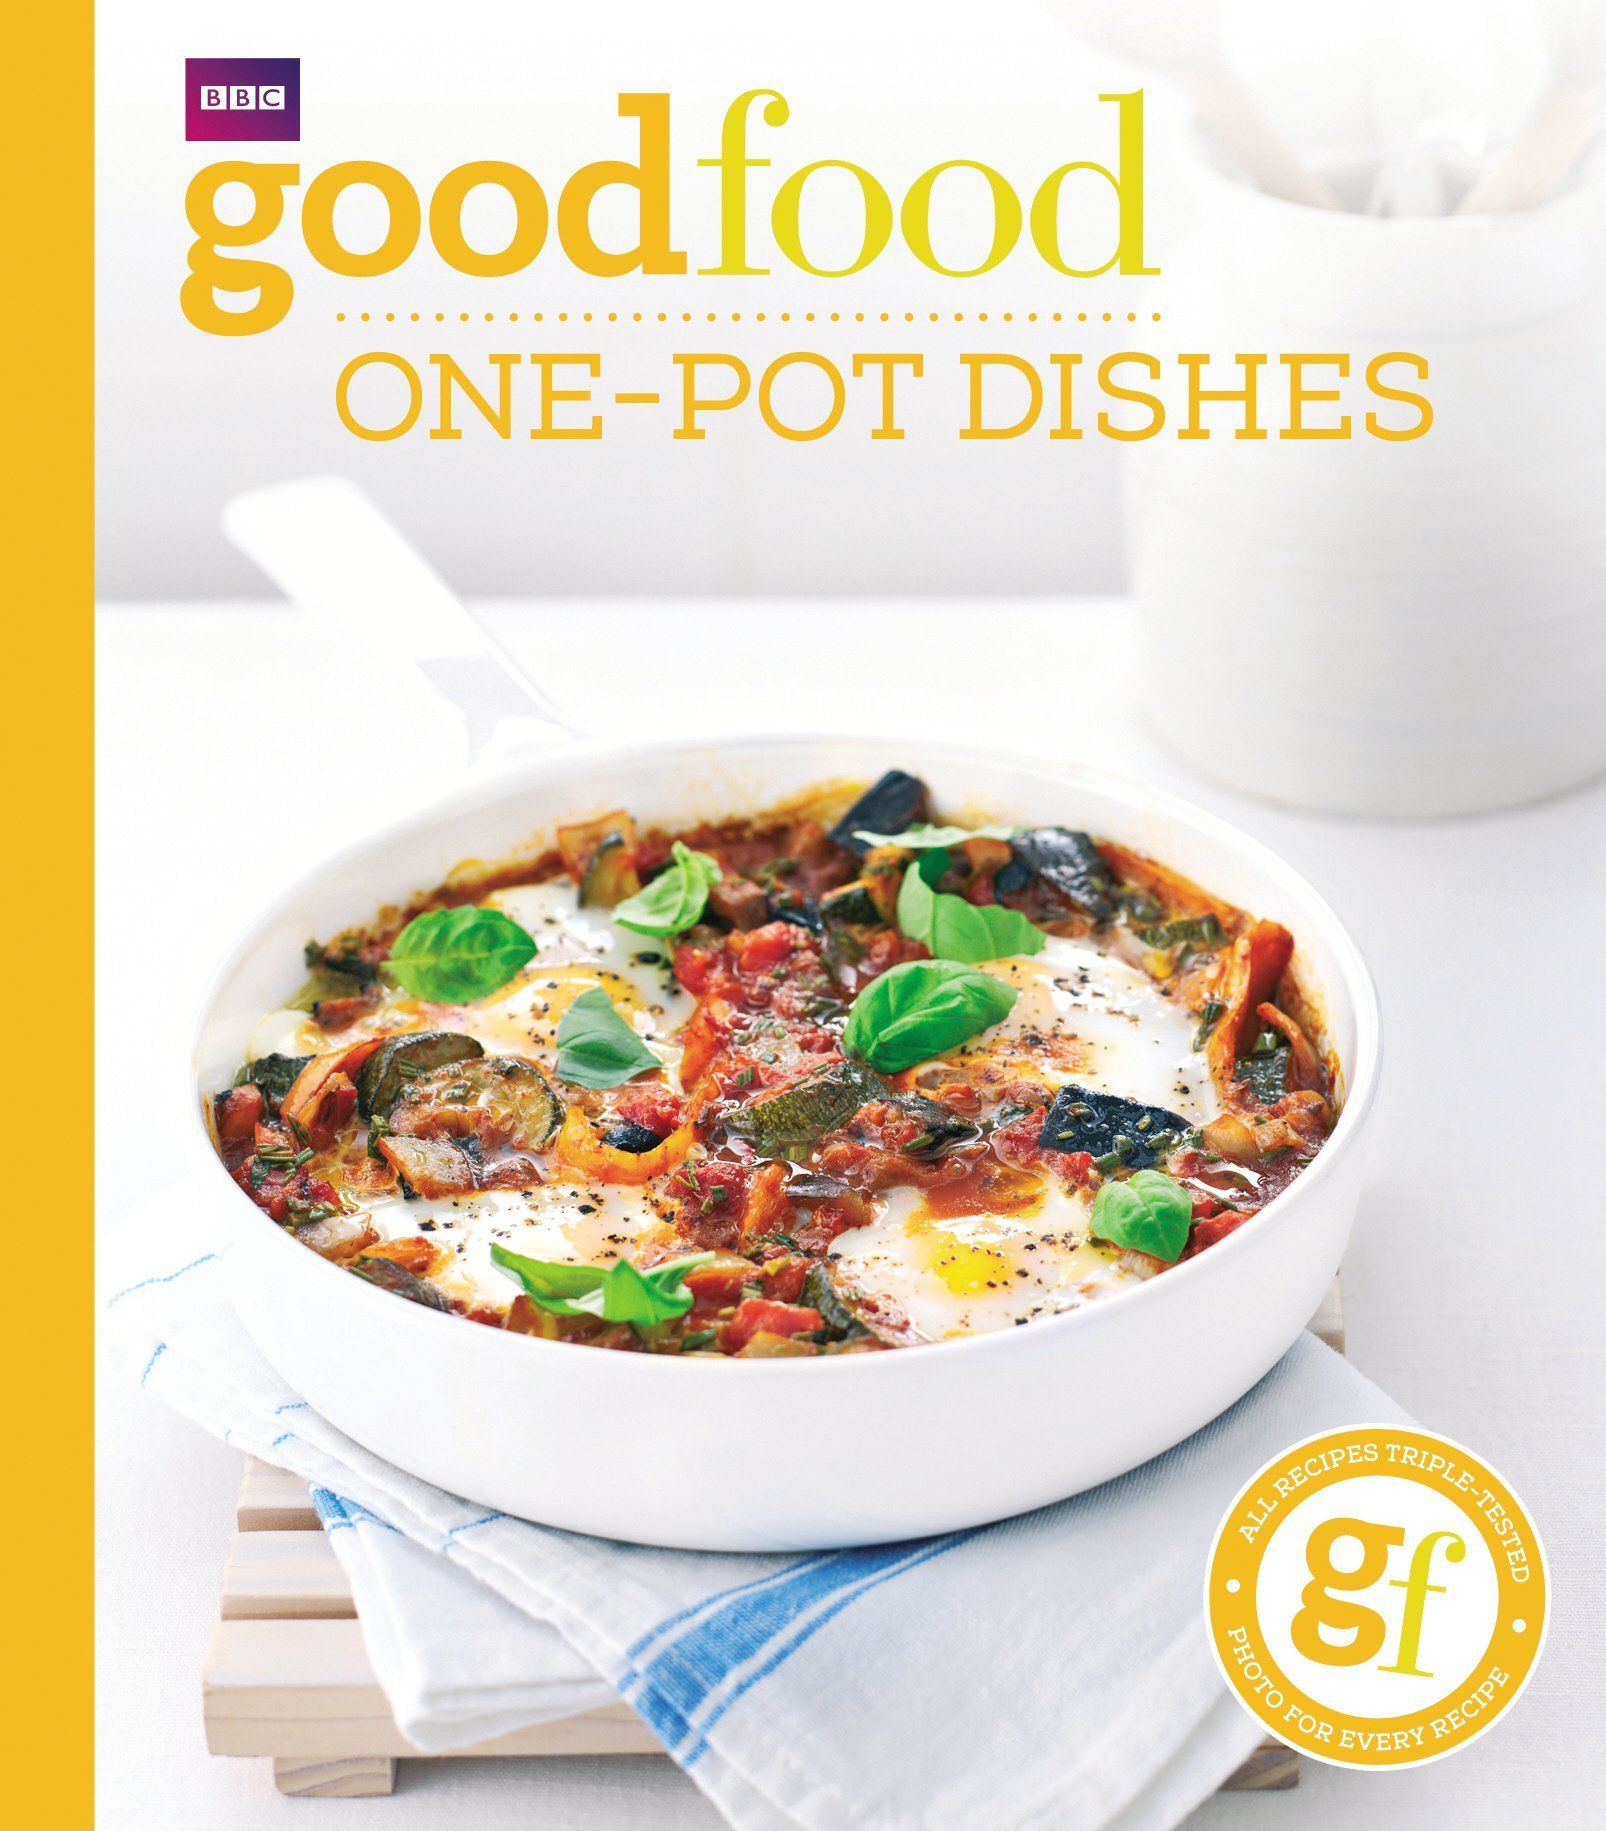 Good Food One Pot Dishes Dishes Food Good Onepot In 2020